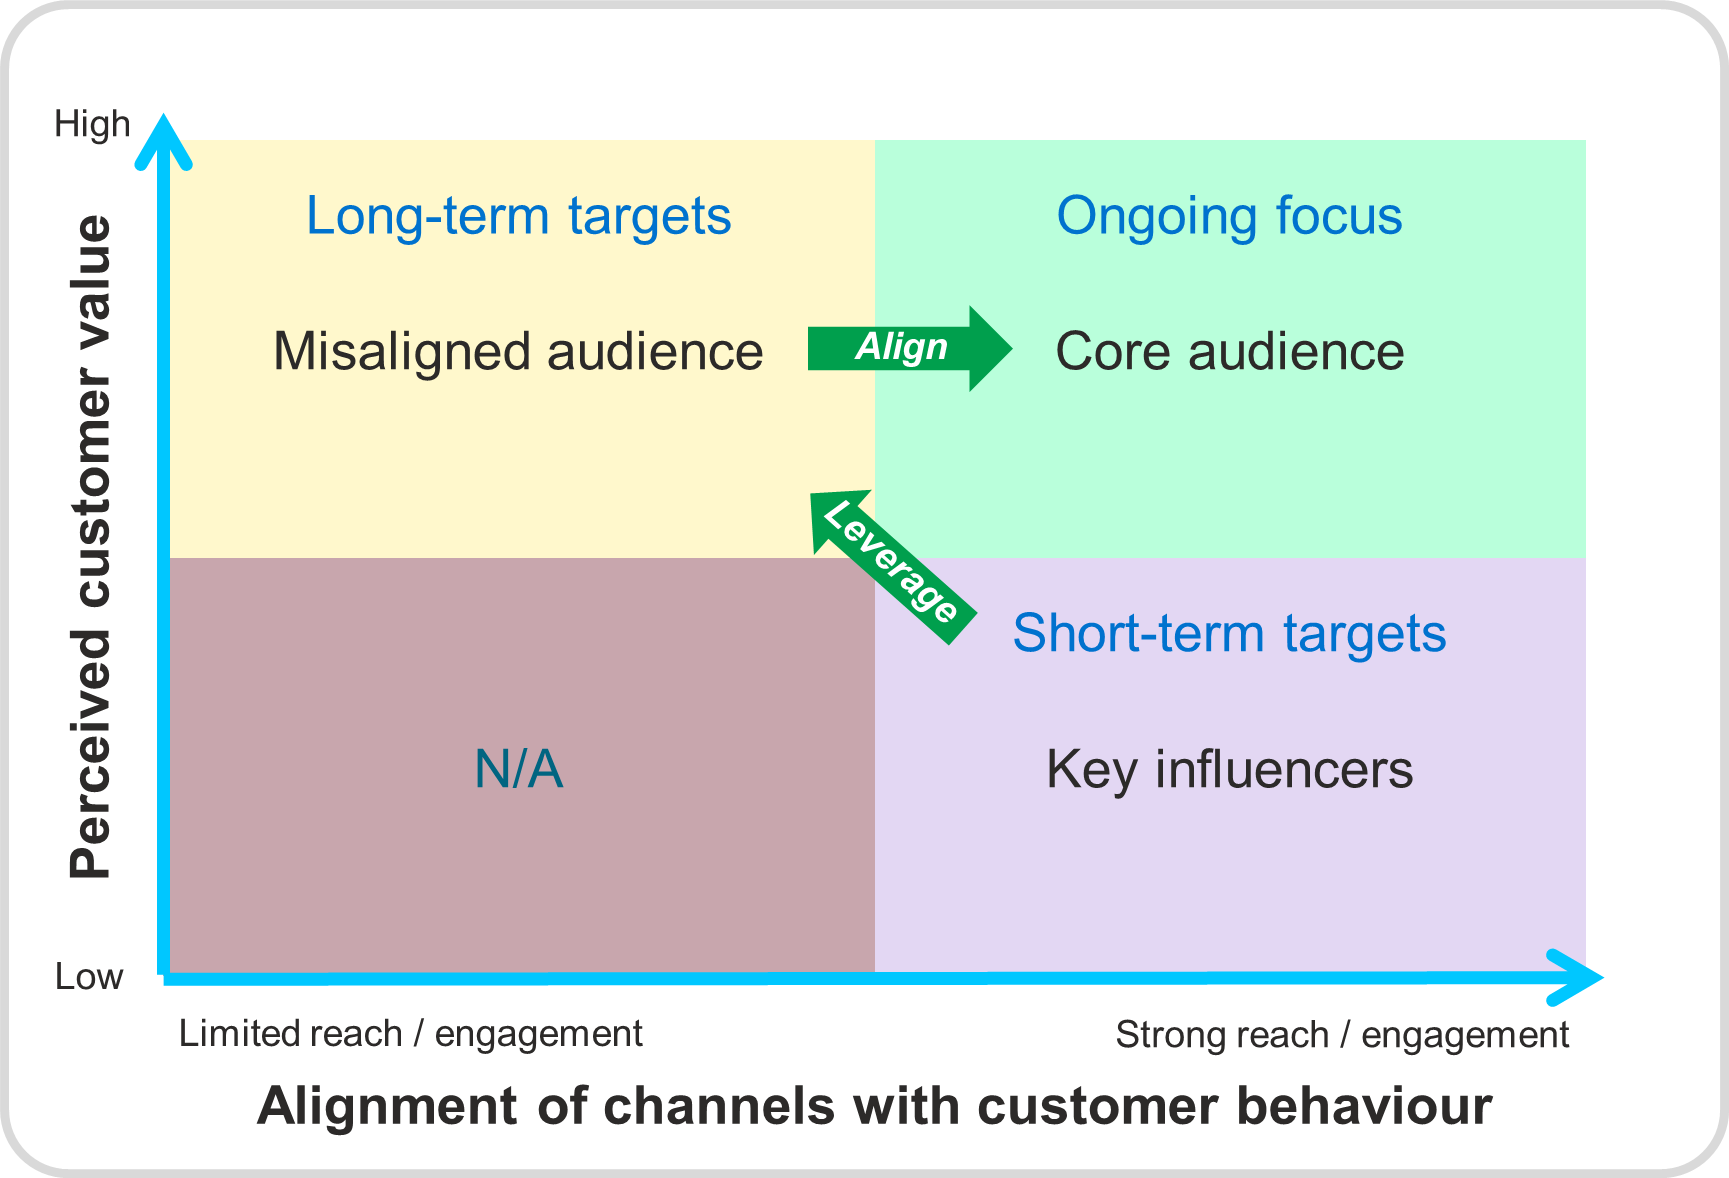 Customer behaviour across channels